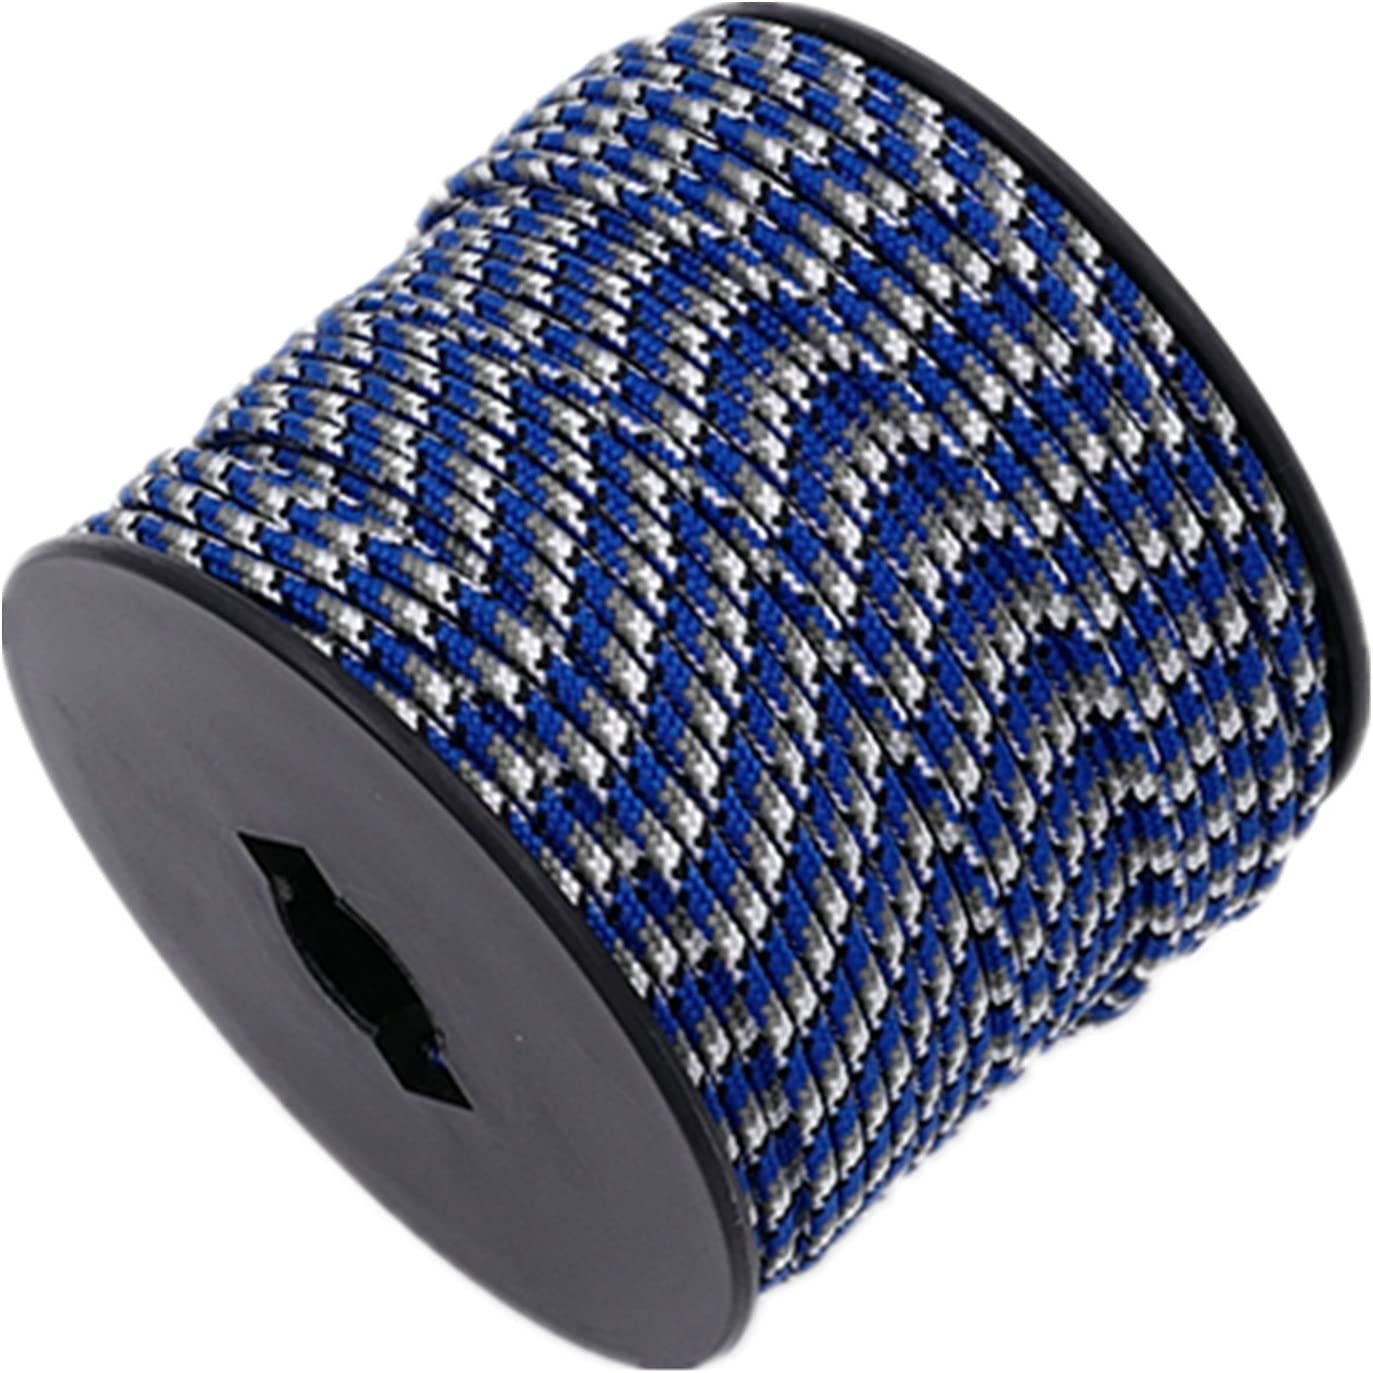 164ft Diamond Braid Nylon Rope,5 Strands Paracord Utility Rope,Multipurpose Nylon Twine 1//8 3mm